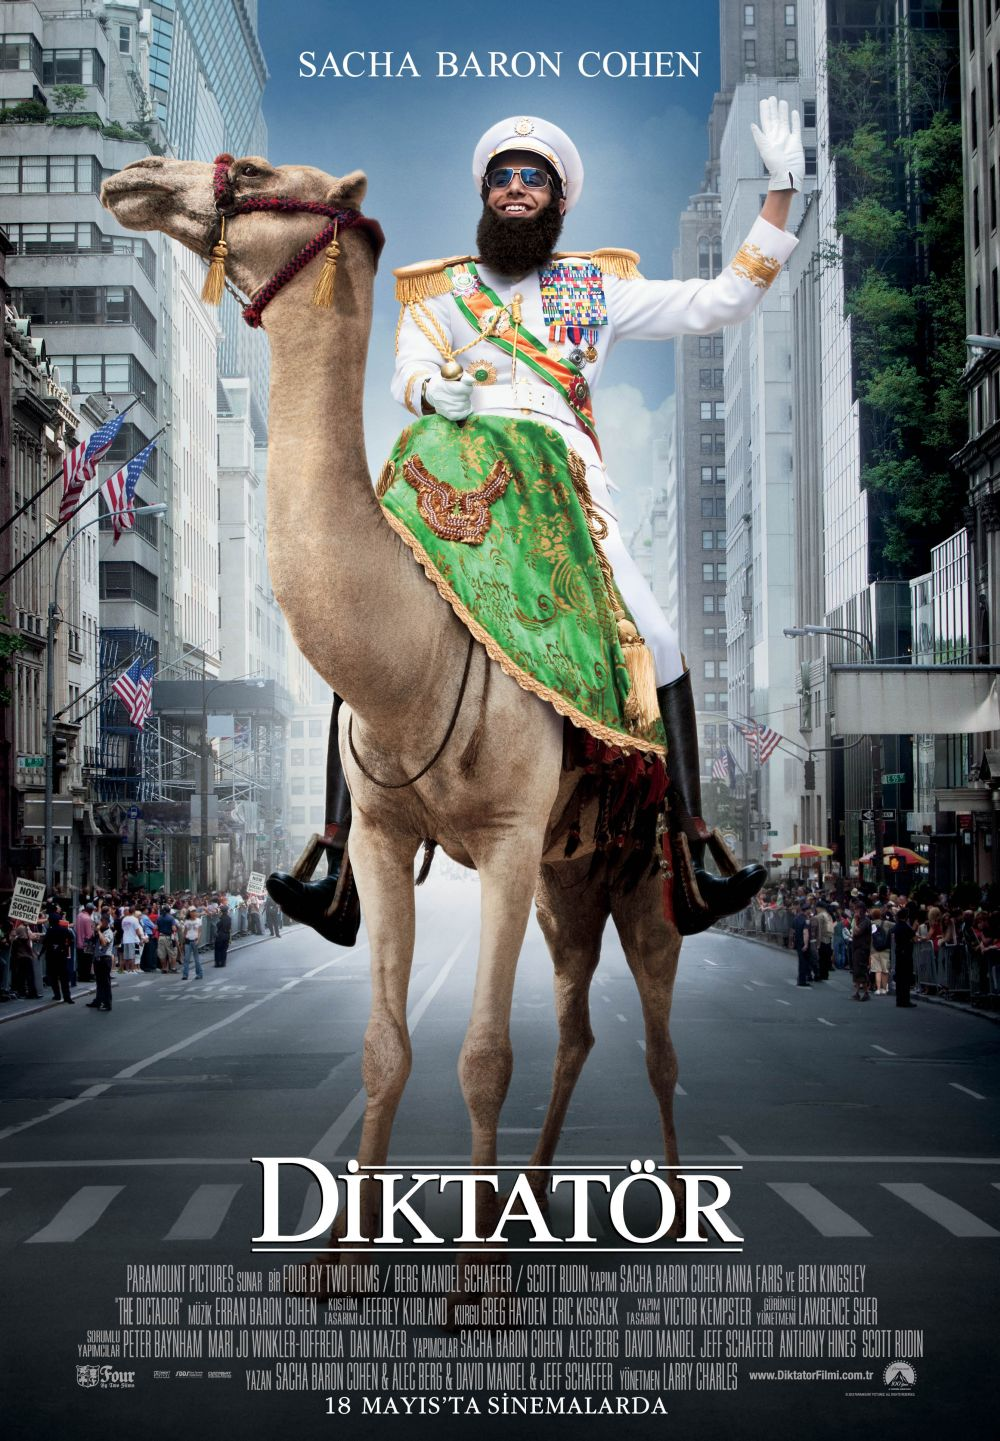 Dictator Movie